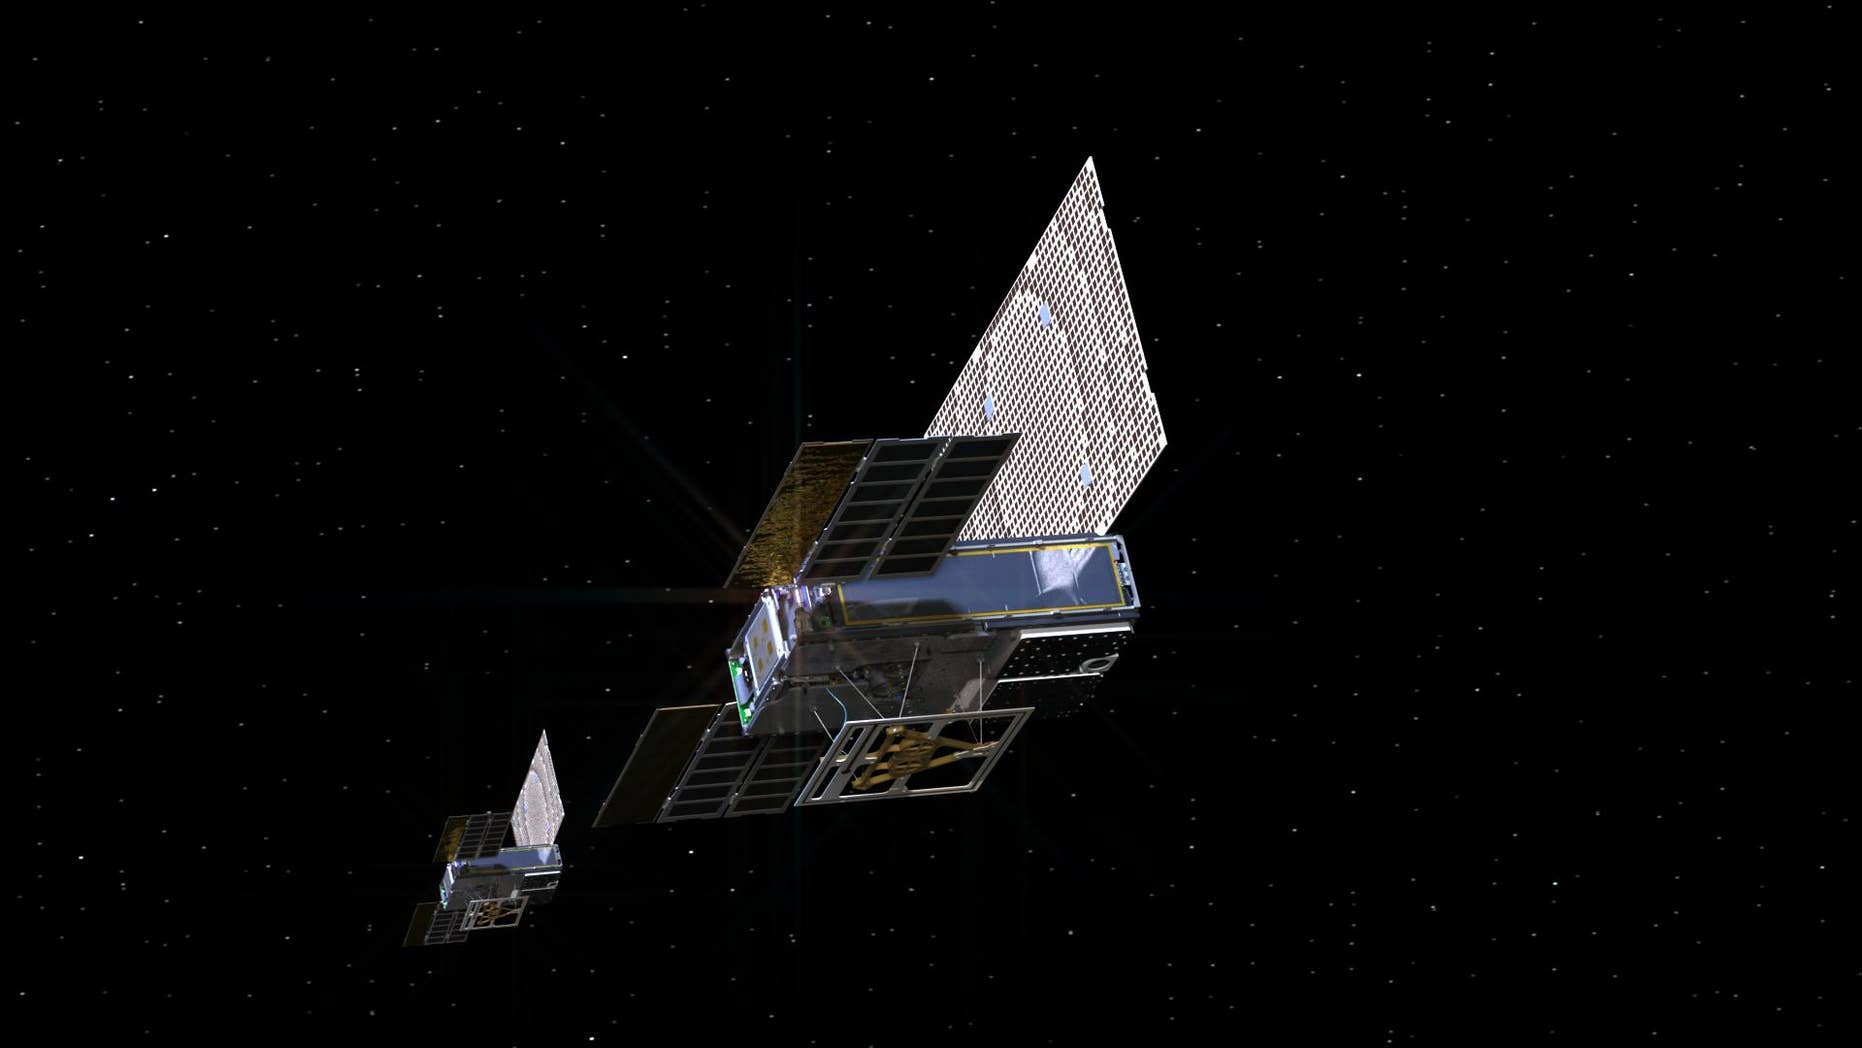 An artist's depiction of the tiny twin MarCO spacecraft on their way to Mars.